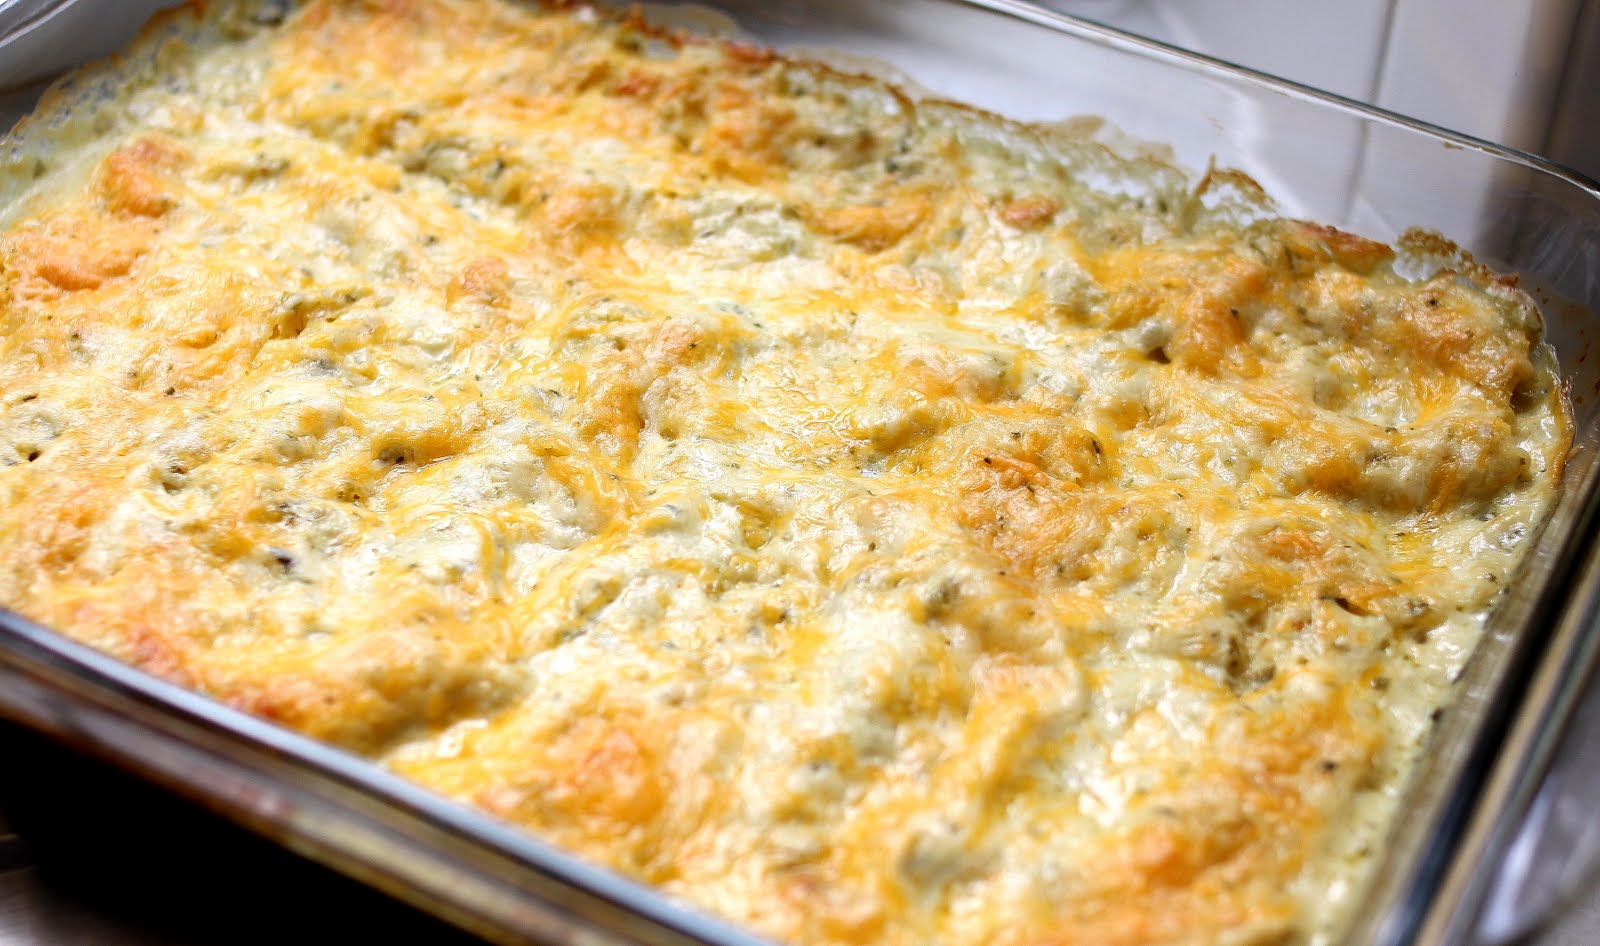 On My Menu: Chicken Enchiladas with Tomatillo Cream Sauce